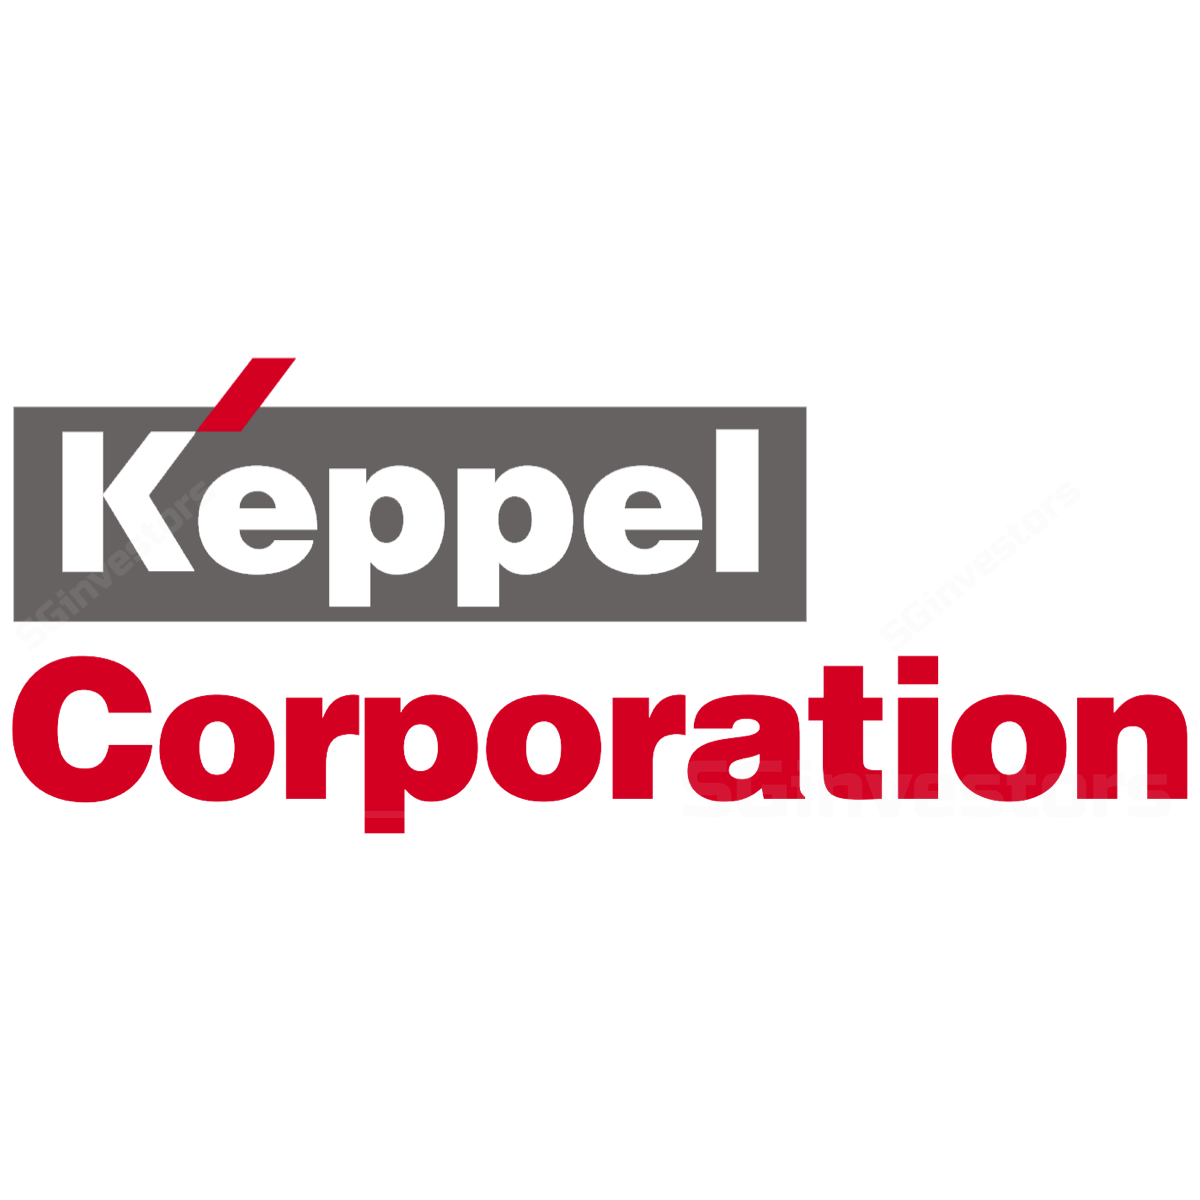 Keppel Corporation - DBS Vickers 2018-04-20: Unlocking Property Value